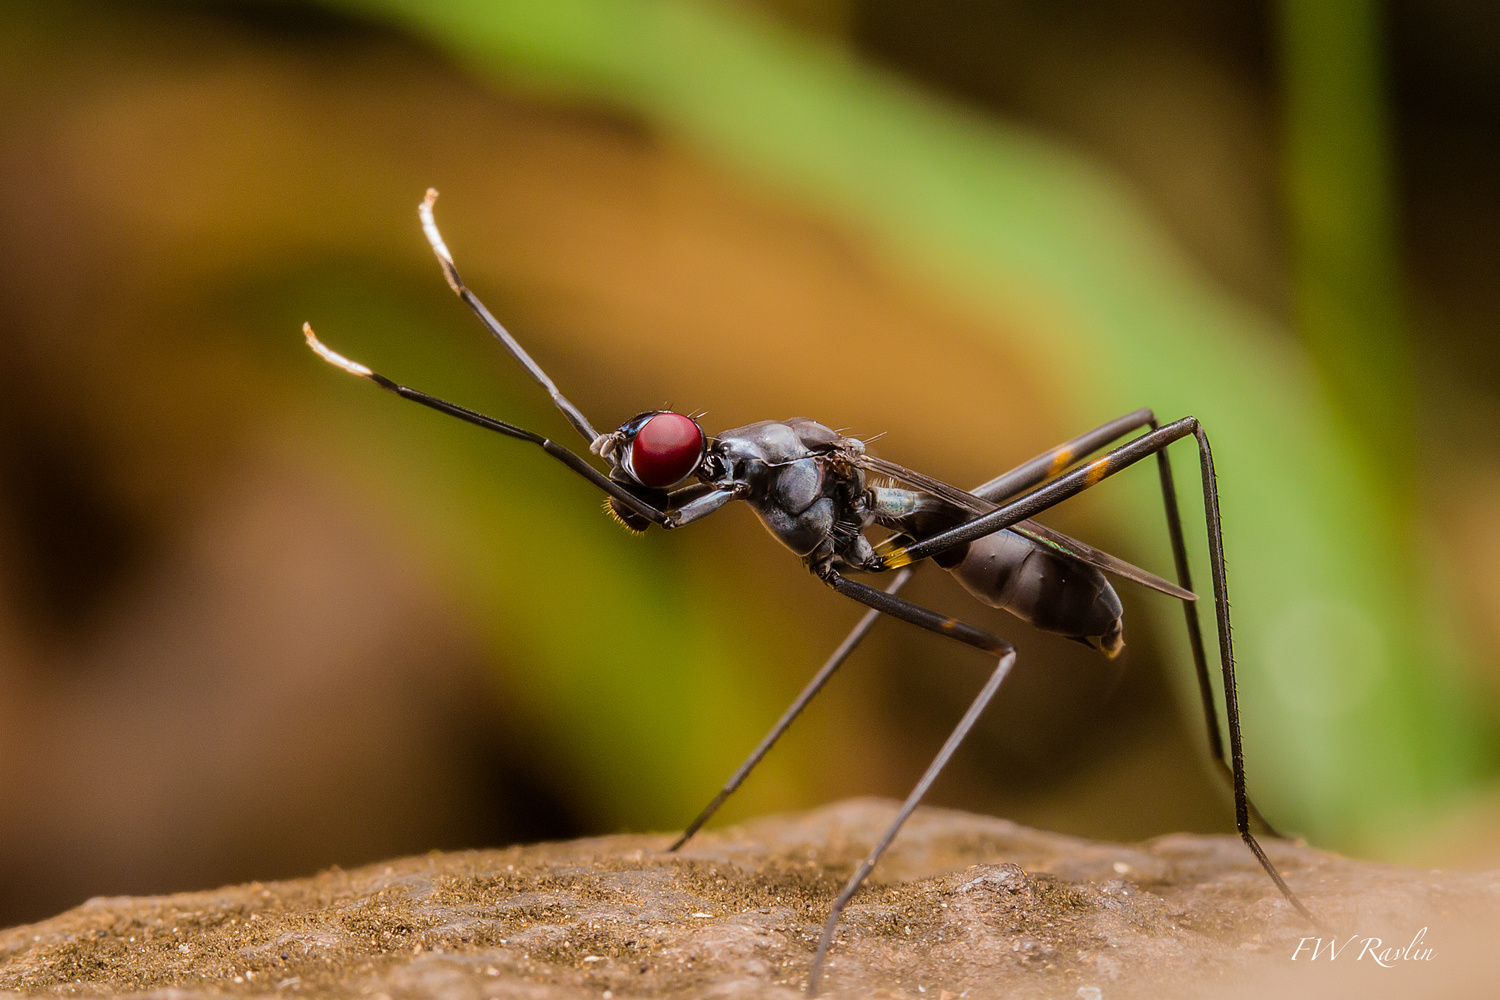 Micropezid fly - Mozambique by Bill Ravlin